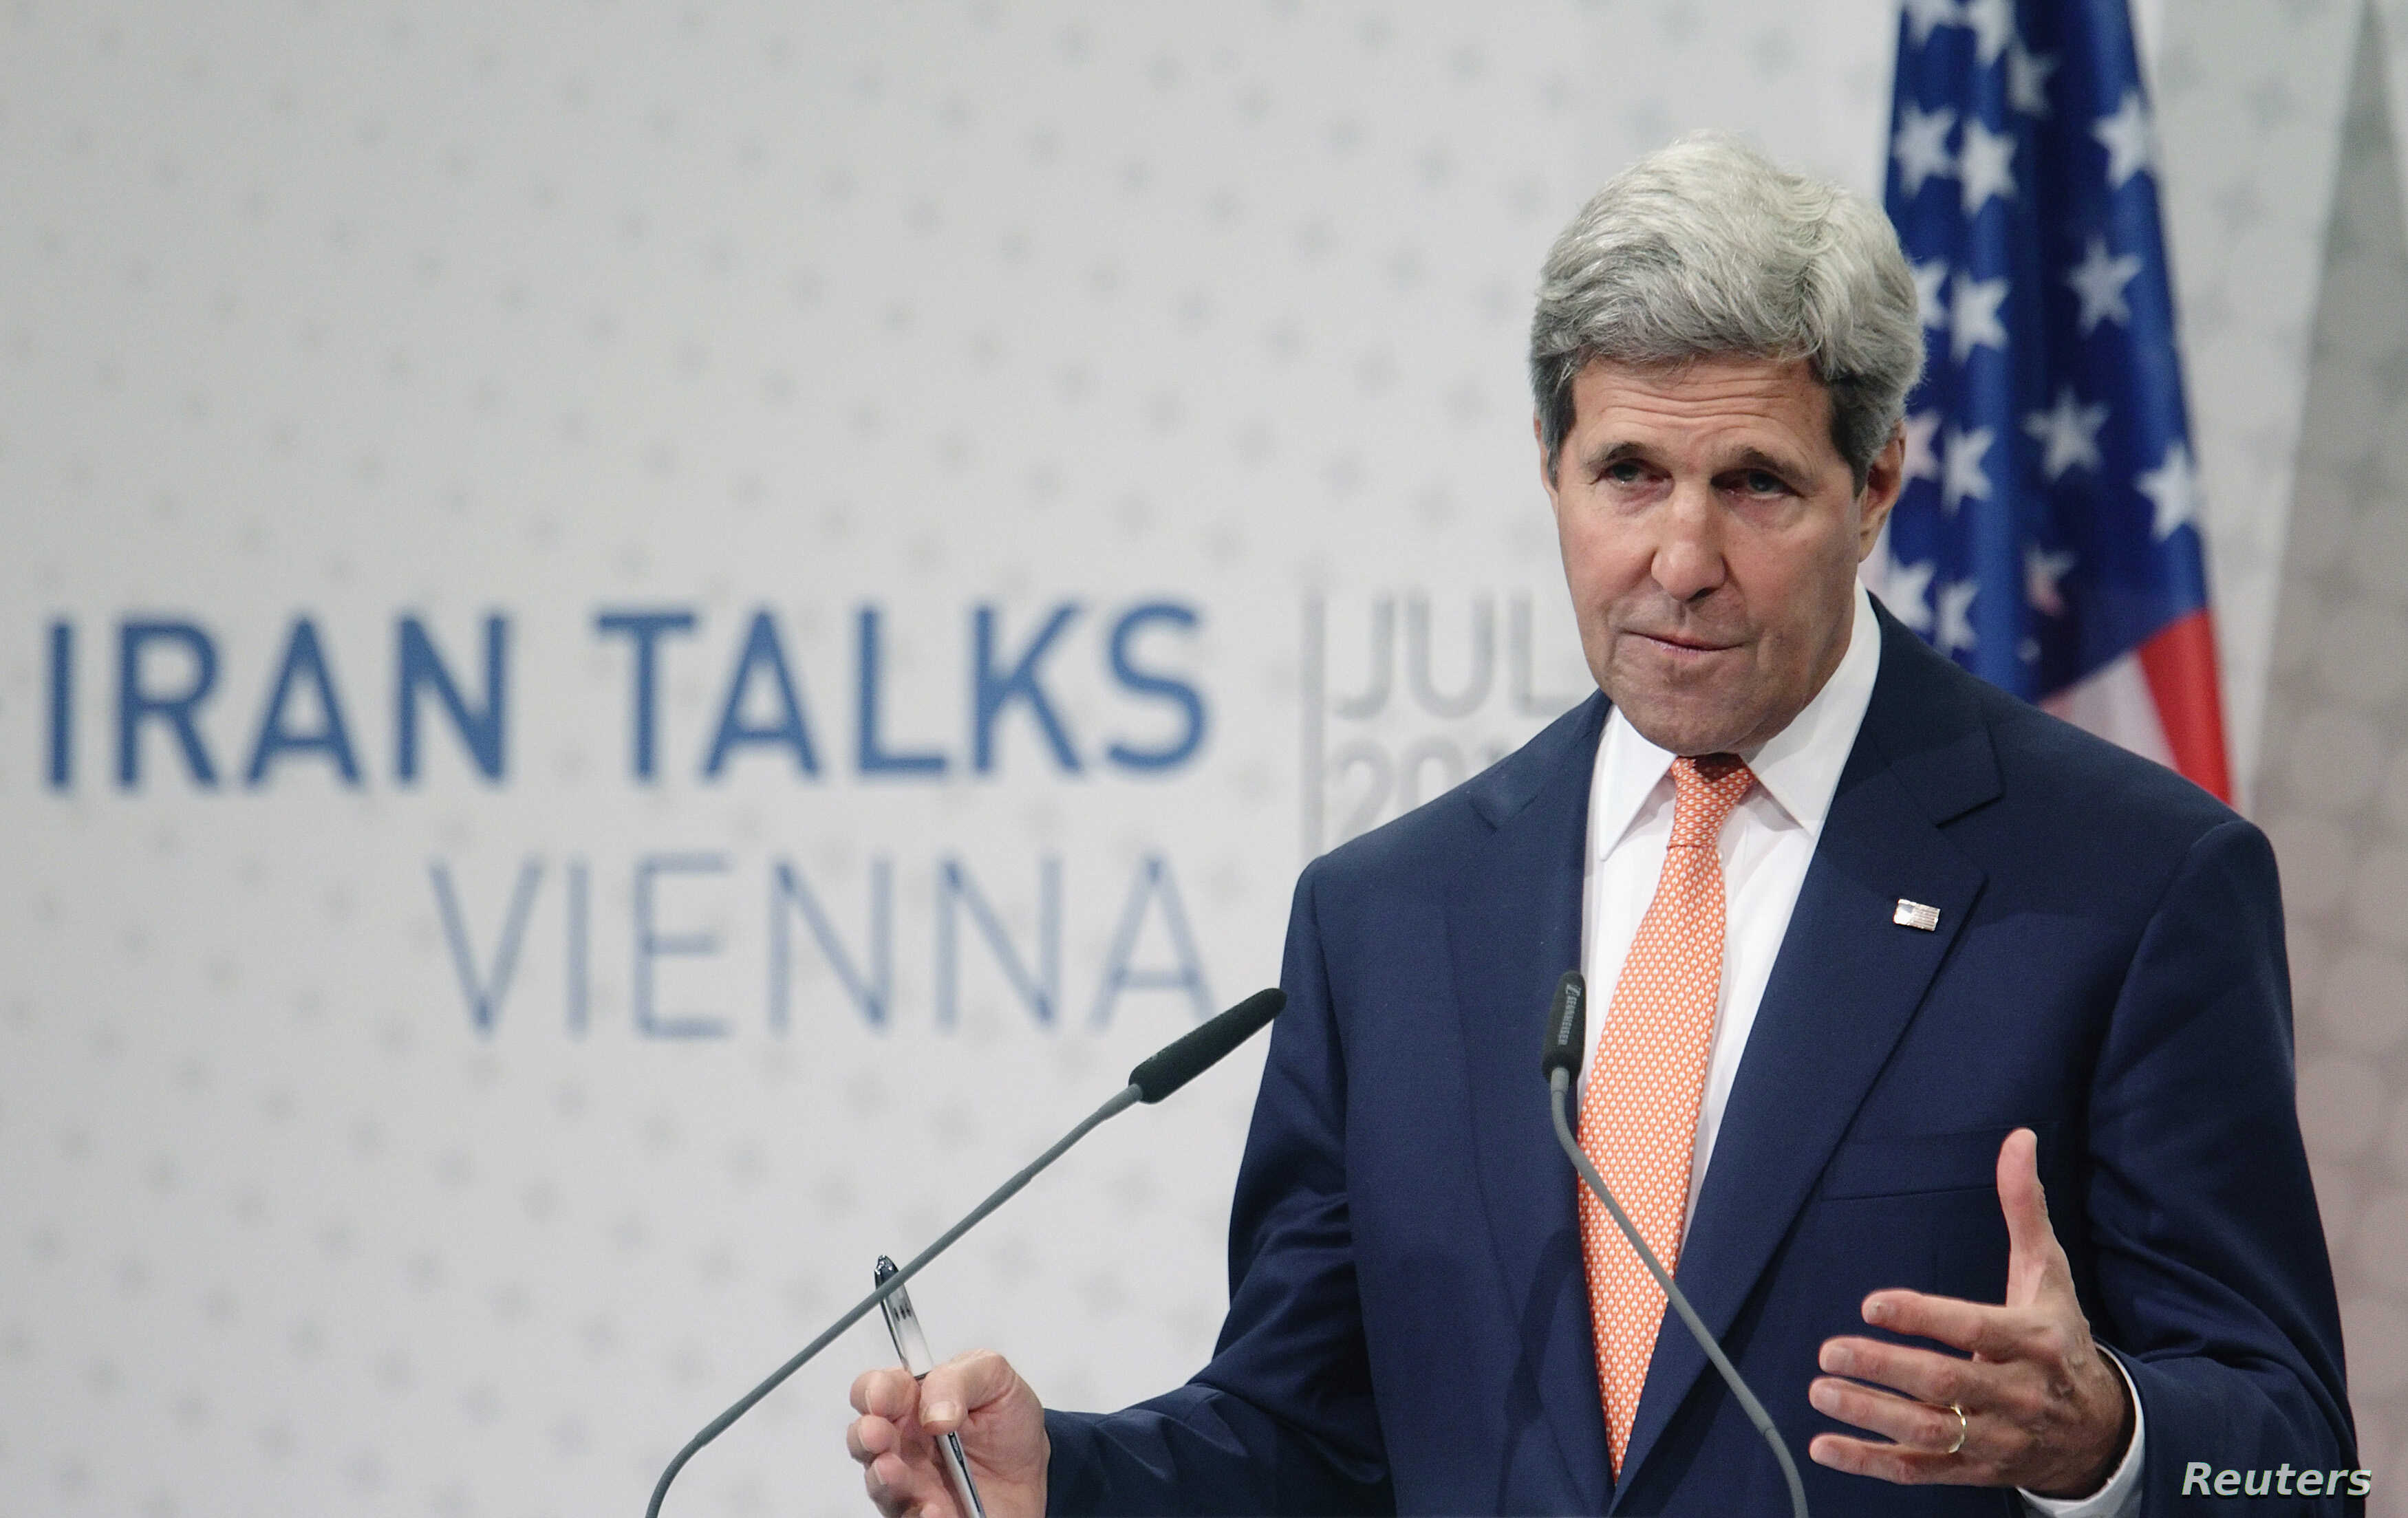 U.S. Secretary of State John Kerry speaks during a news conference in Vienna, July 15, 2014.